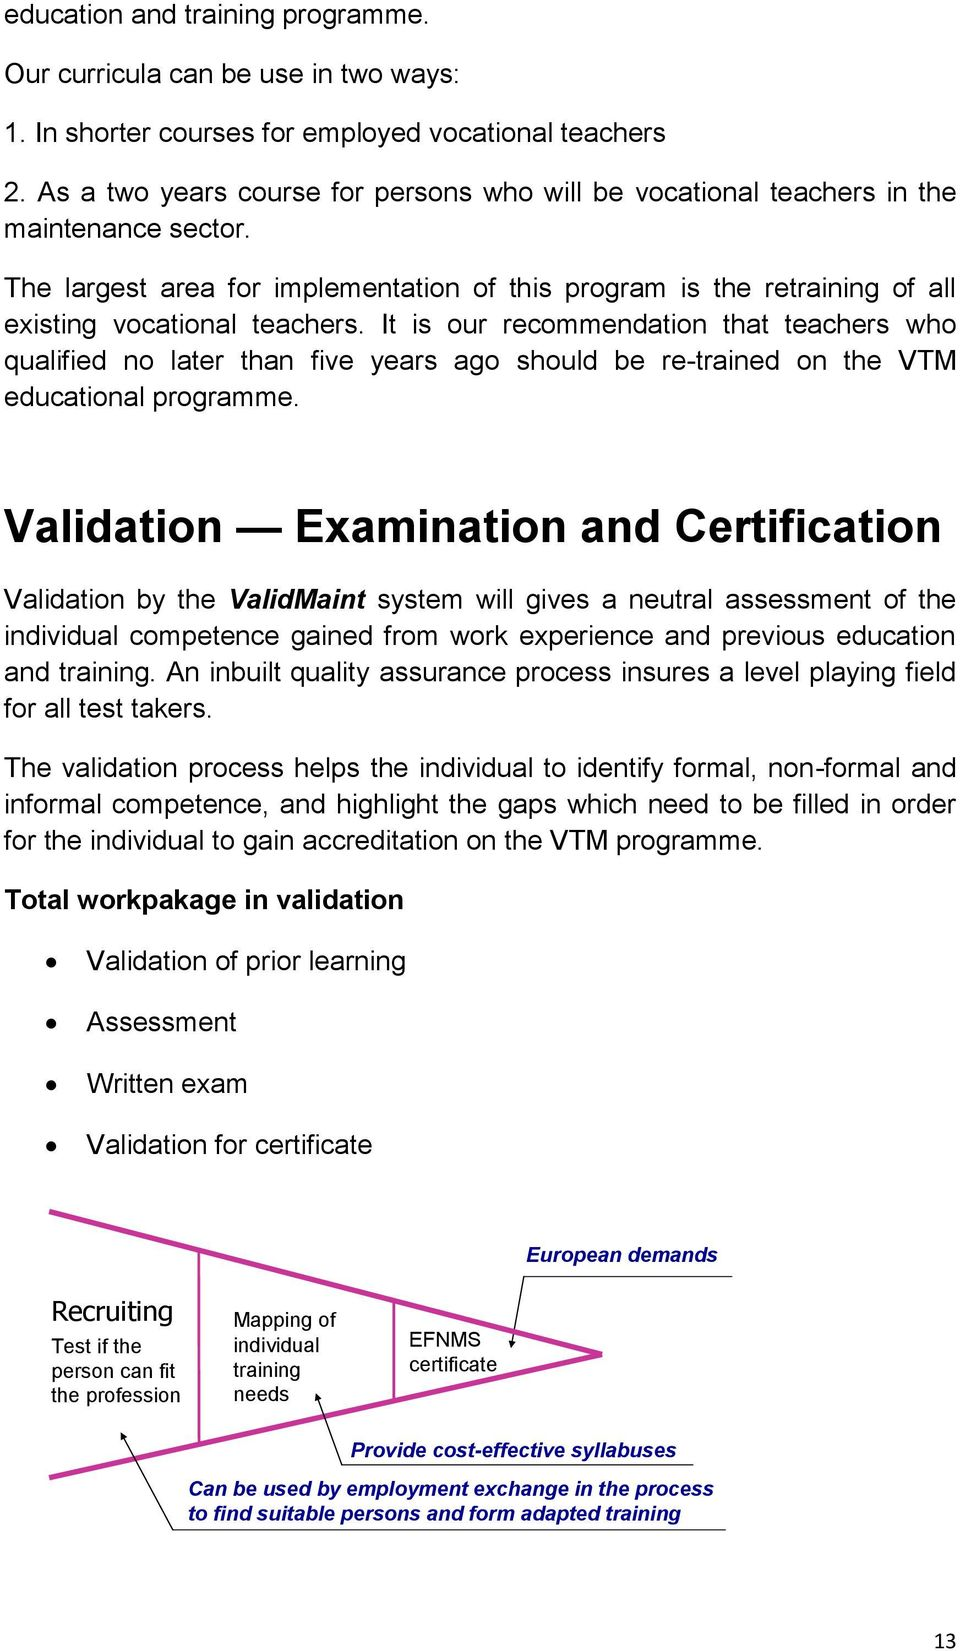 It is our recommendation that teachers who qualified no later than five years ago should be re-trained on the VTM educational programme.